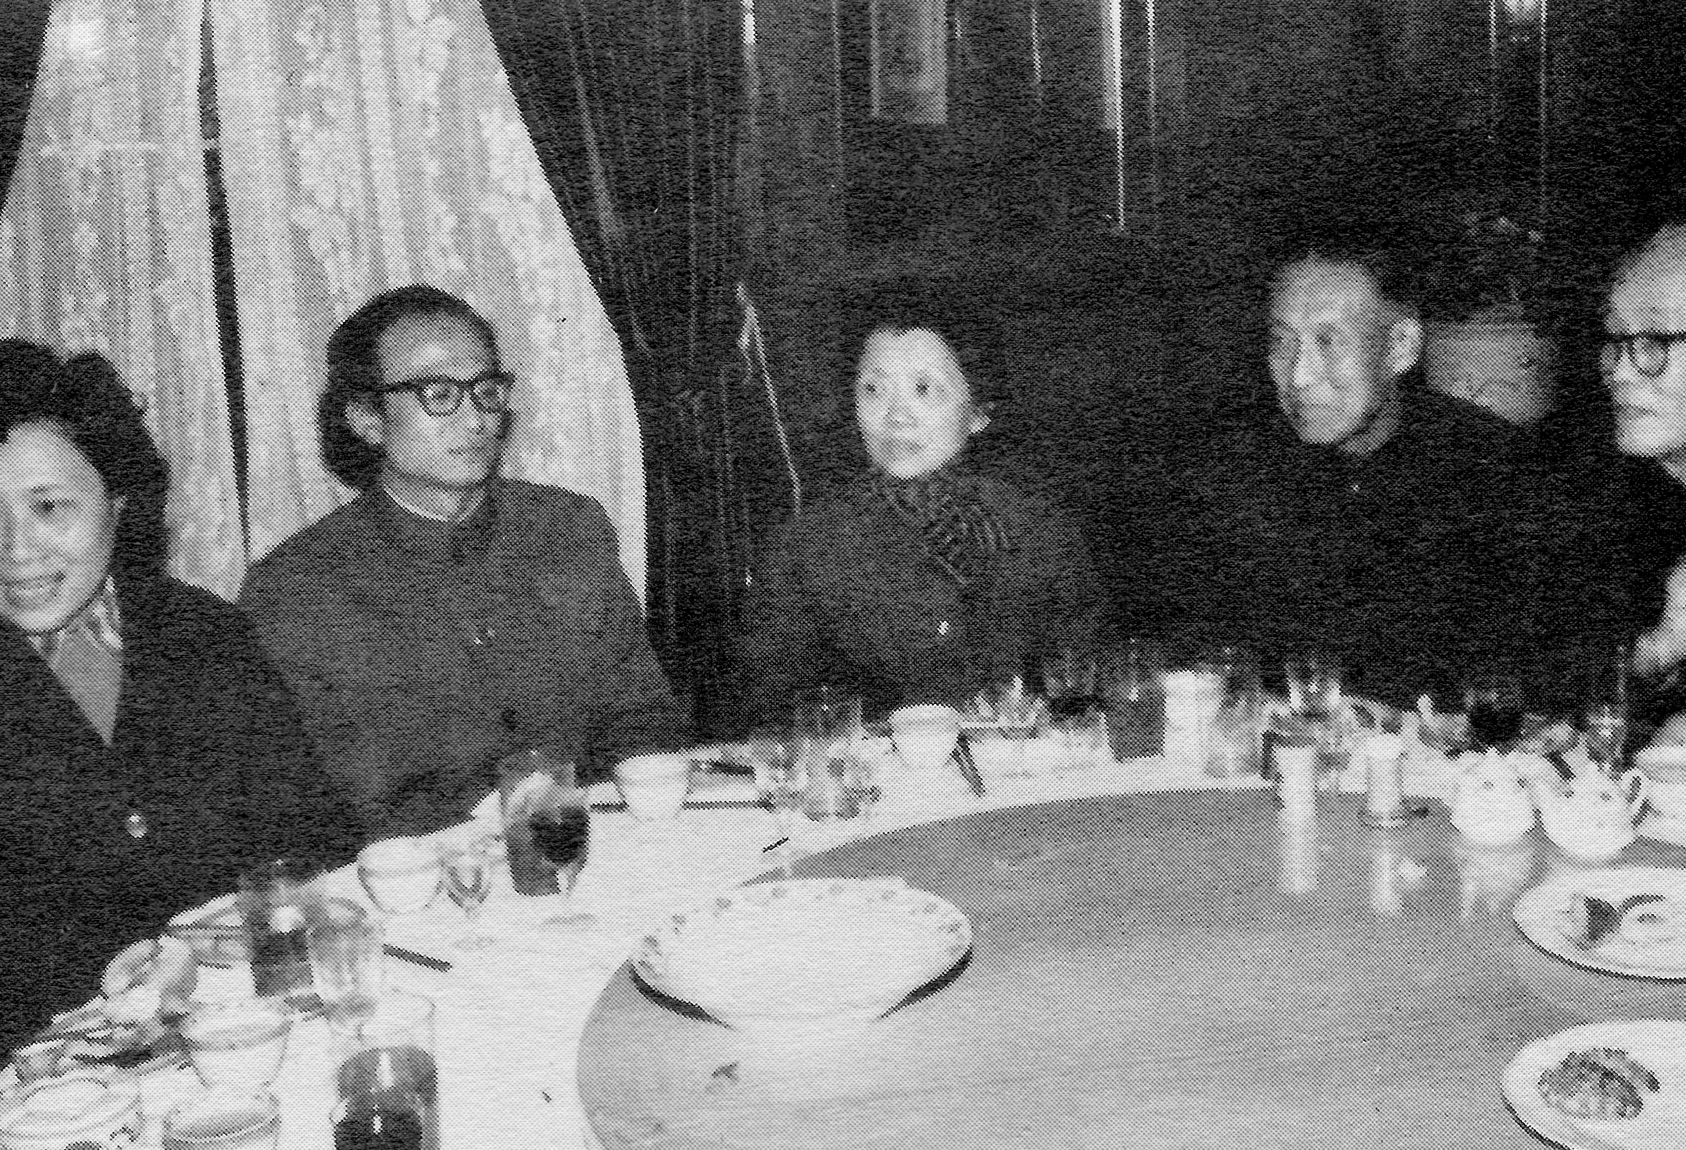 Members of the Shanghai Conservatory of Music during a banquet hosted by the Center. From left to right: Zhu Fengbo, soprano; Chen Xiyang, conductor of the Shanghai Ballet; Wu Leyi, chairman of the piano department; Huang Yijun, conductor of the Shanghai Philharmonic; He Luding, director of the Shanghai Conservatory.